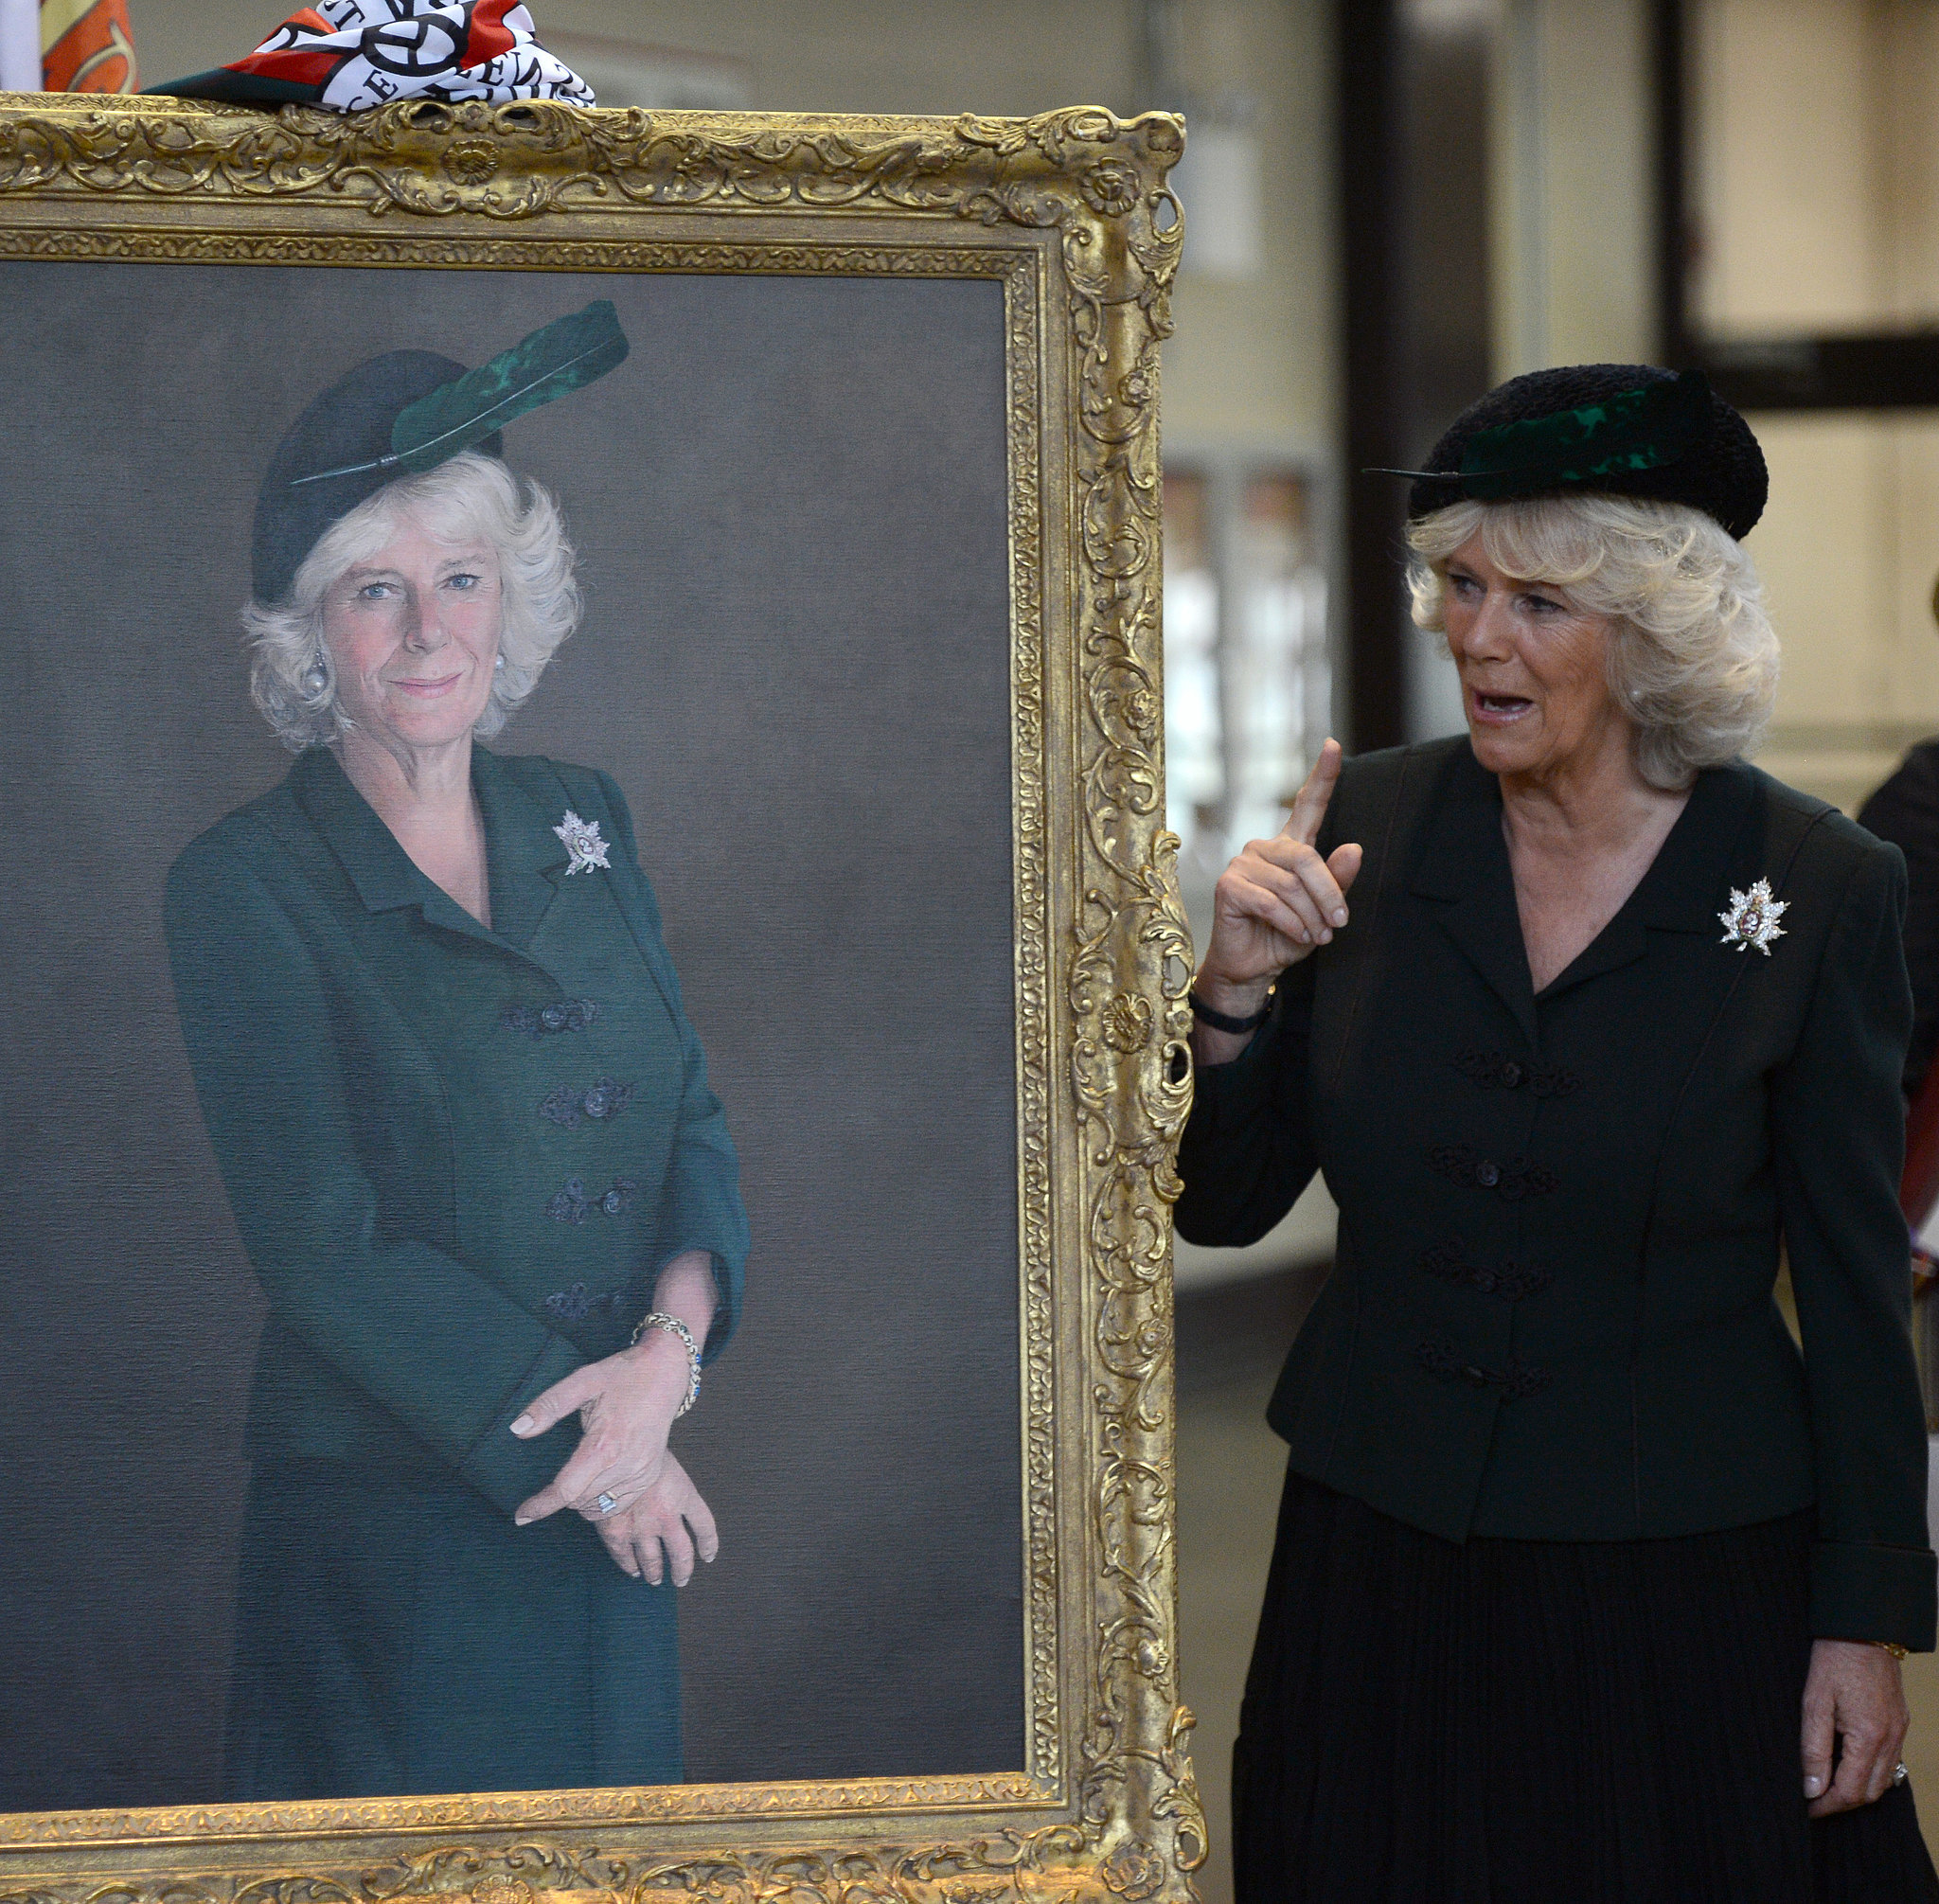 Camilla, the Duchess of Cornwall, unveiled a portrait of herself while on tour in Canada. She was even wearing the same ensemble!